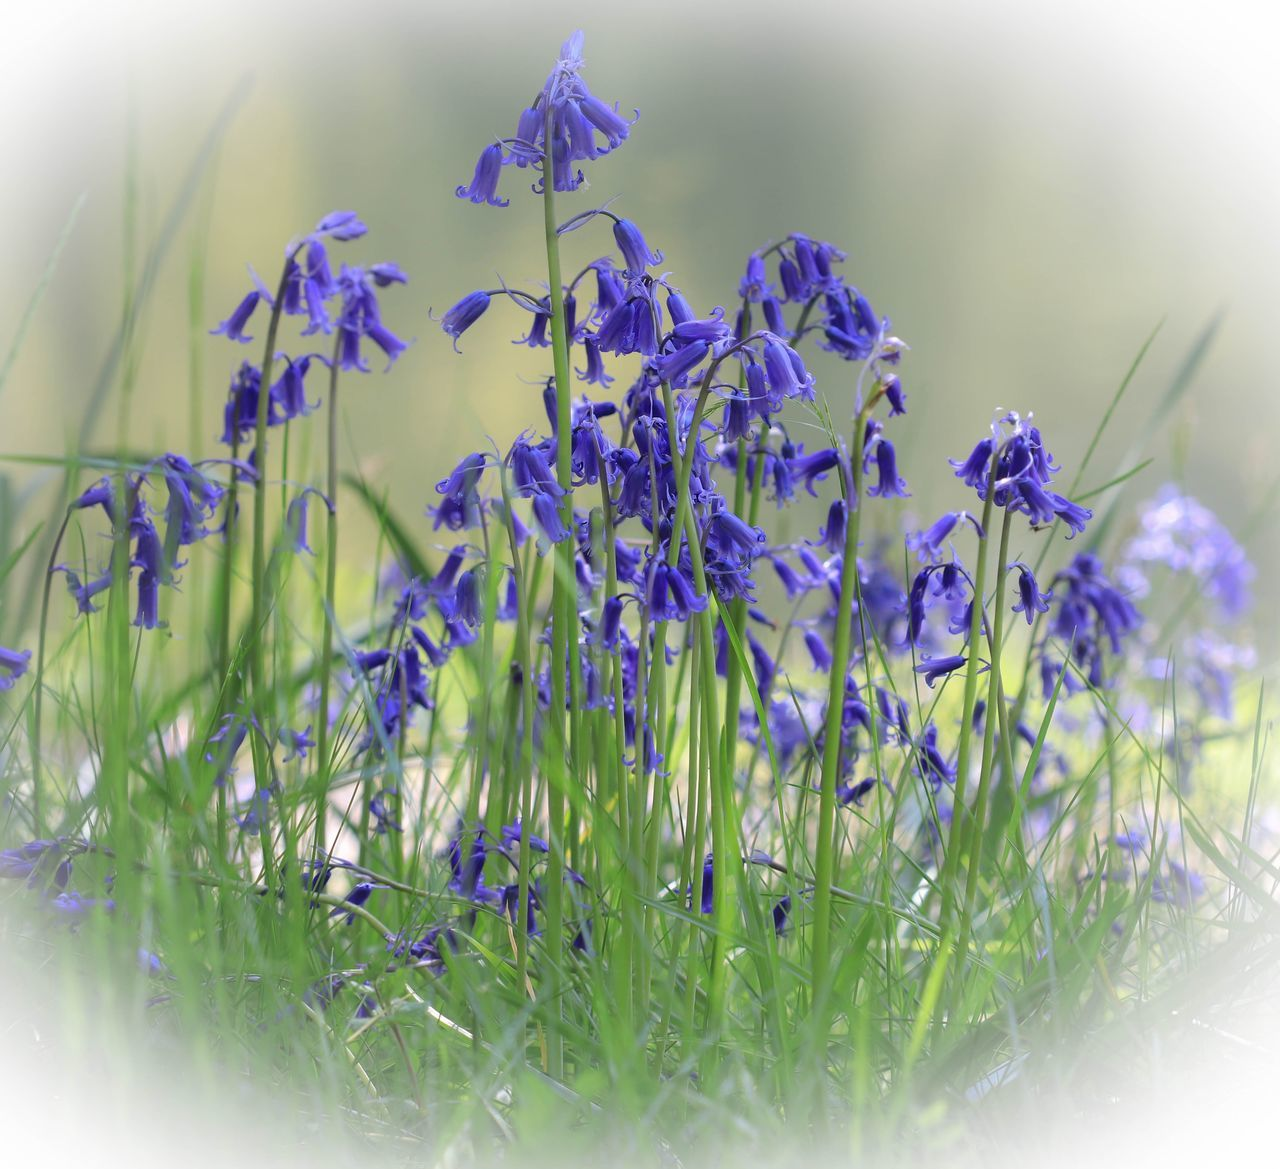 flower, plant, flowering plant, vulnerability, fragility, beauty in nature, freshness, growth, selective focus, close-up, purple, nature, no people, petal, inflorescence, day, flower head, outdoors, plant part, green color, lavender